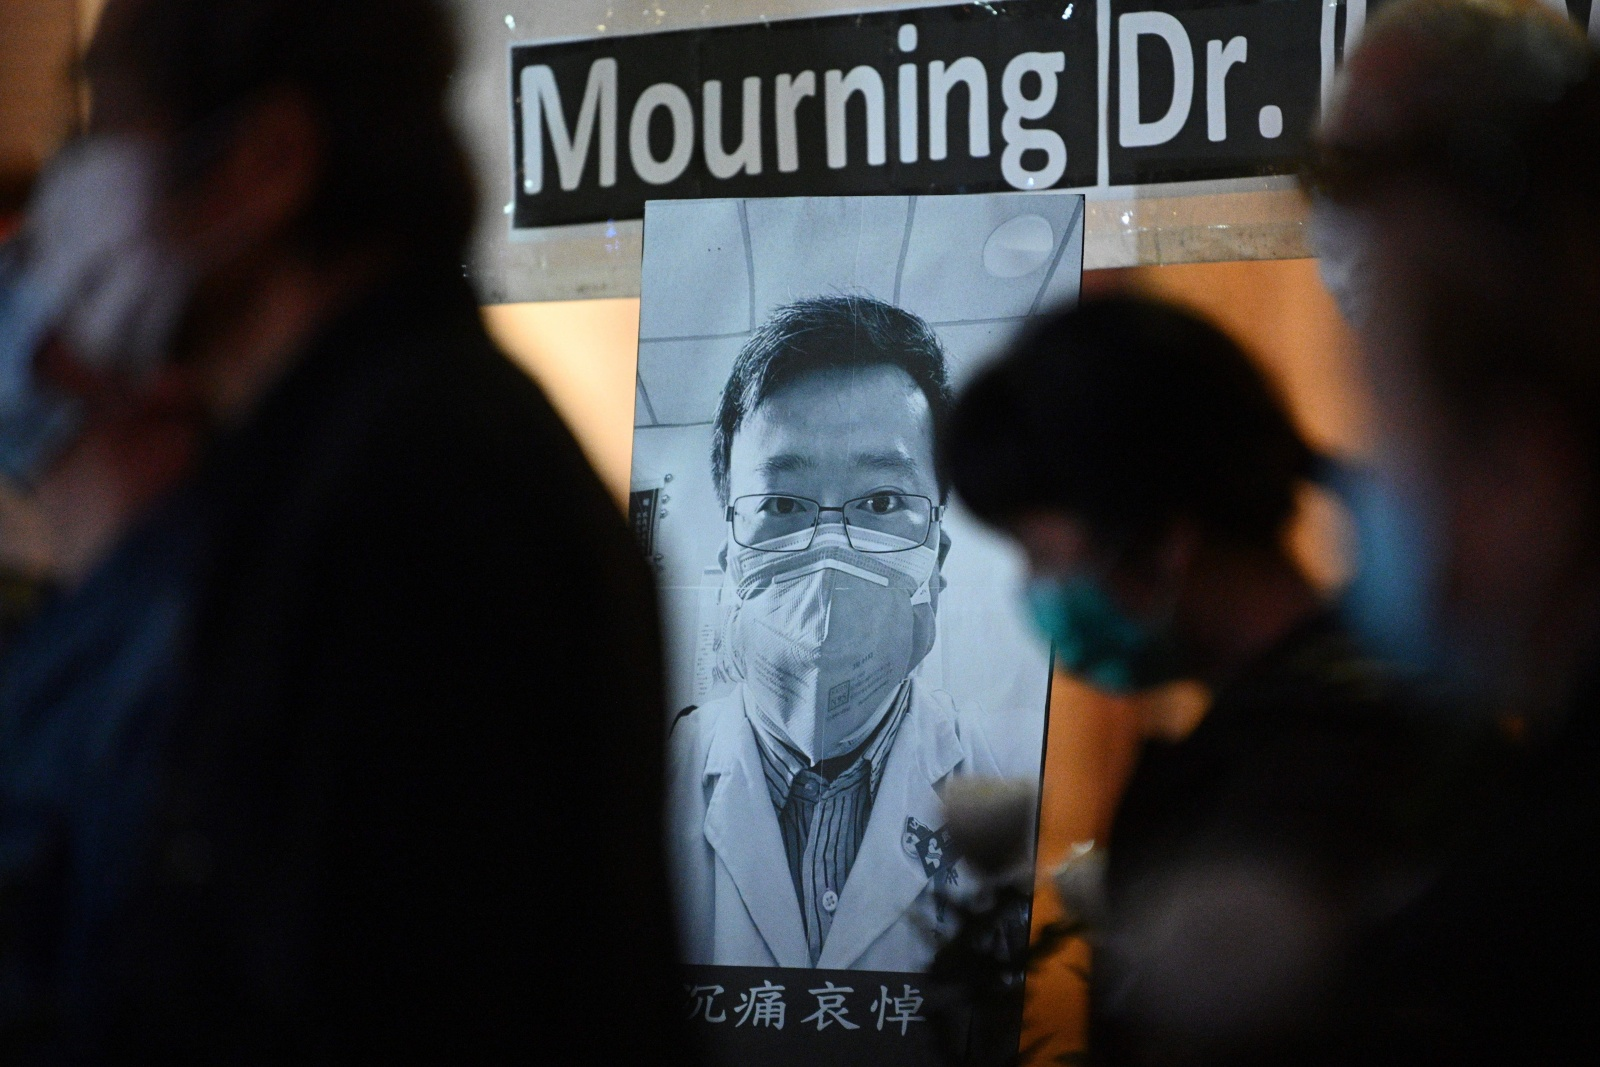 People attend a vigil in Hong Kong on February 7, 2020 for novel coronavirus whistleblowing doctor Li Wenliang (pictured background C), 34, who died in Wuhan after contracting the virus while treating a patient. - A Chinese doctor who was punished after raising the alarm about China's new coronavirus died from the pathogen on February 7, sparking an outpouring of grief and anger over a worsening crisis that has now killed more than 630 people. (Photo by Anthony WALLACE / AFP) (Photo by ANTHONY WALLACE/AFP via Getty Images)